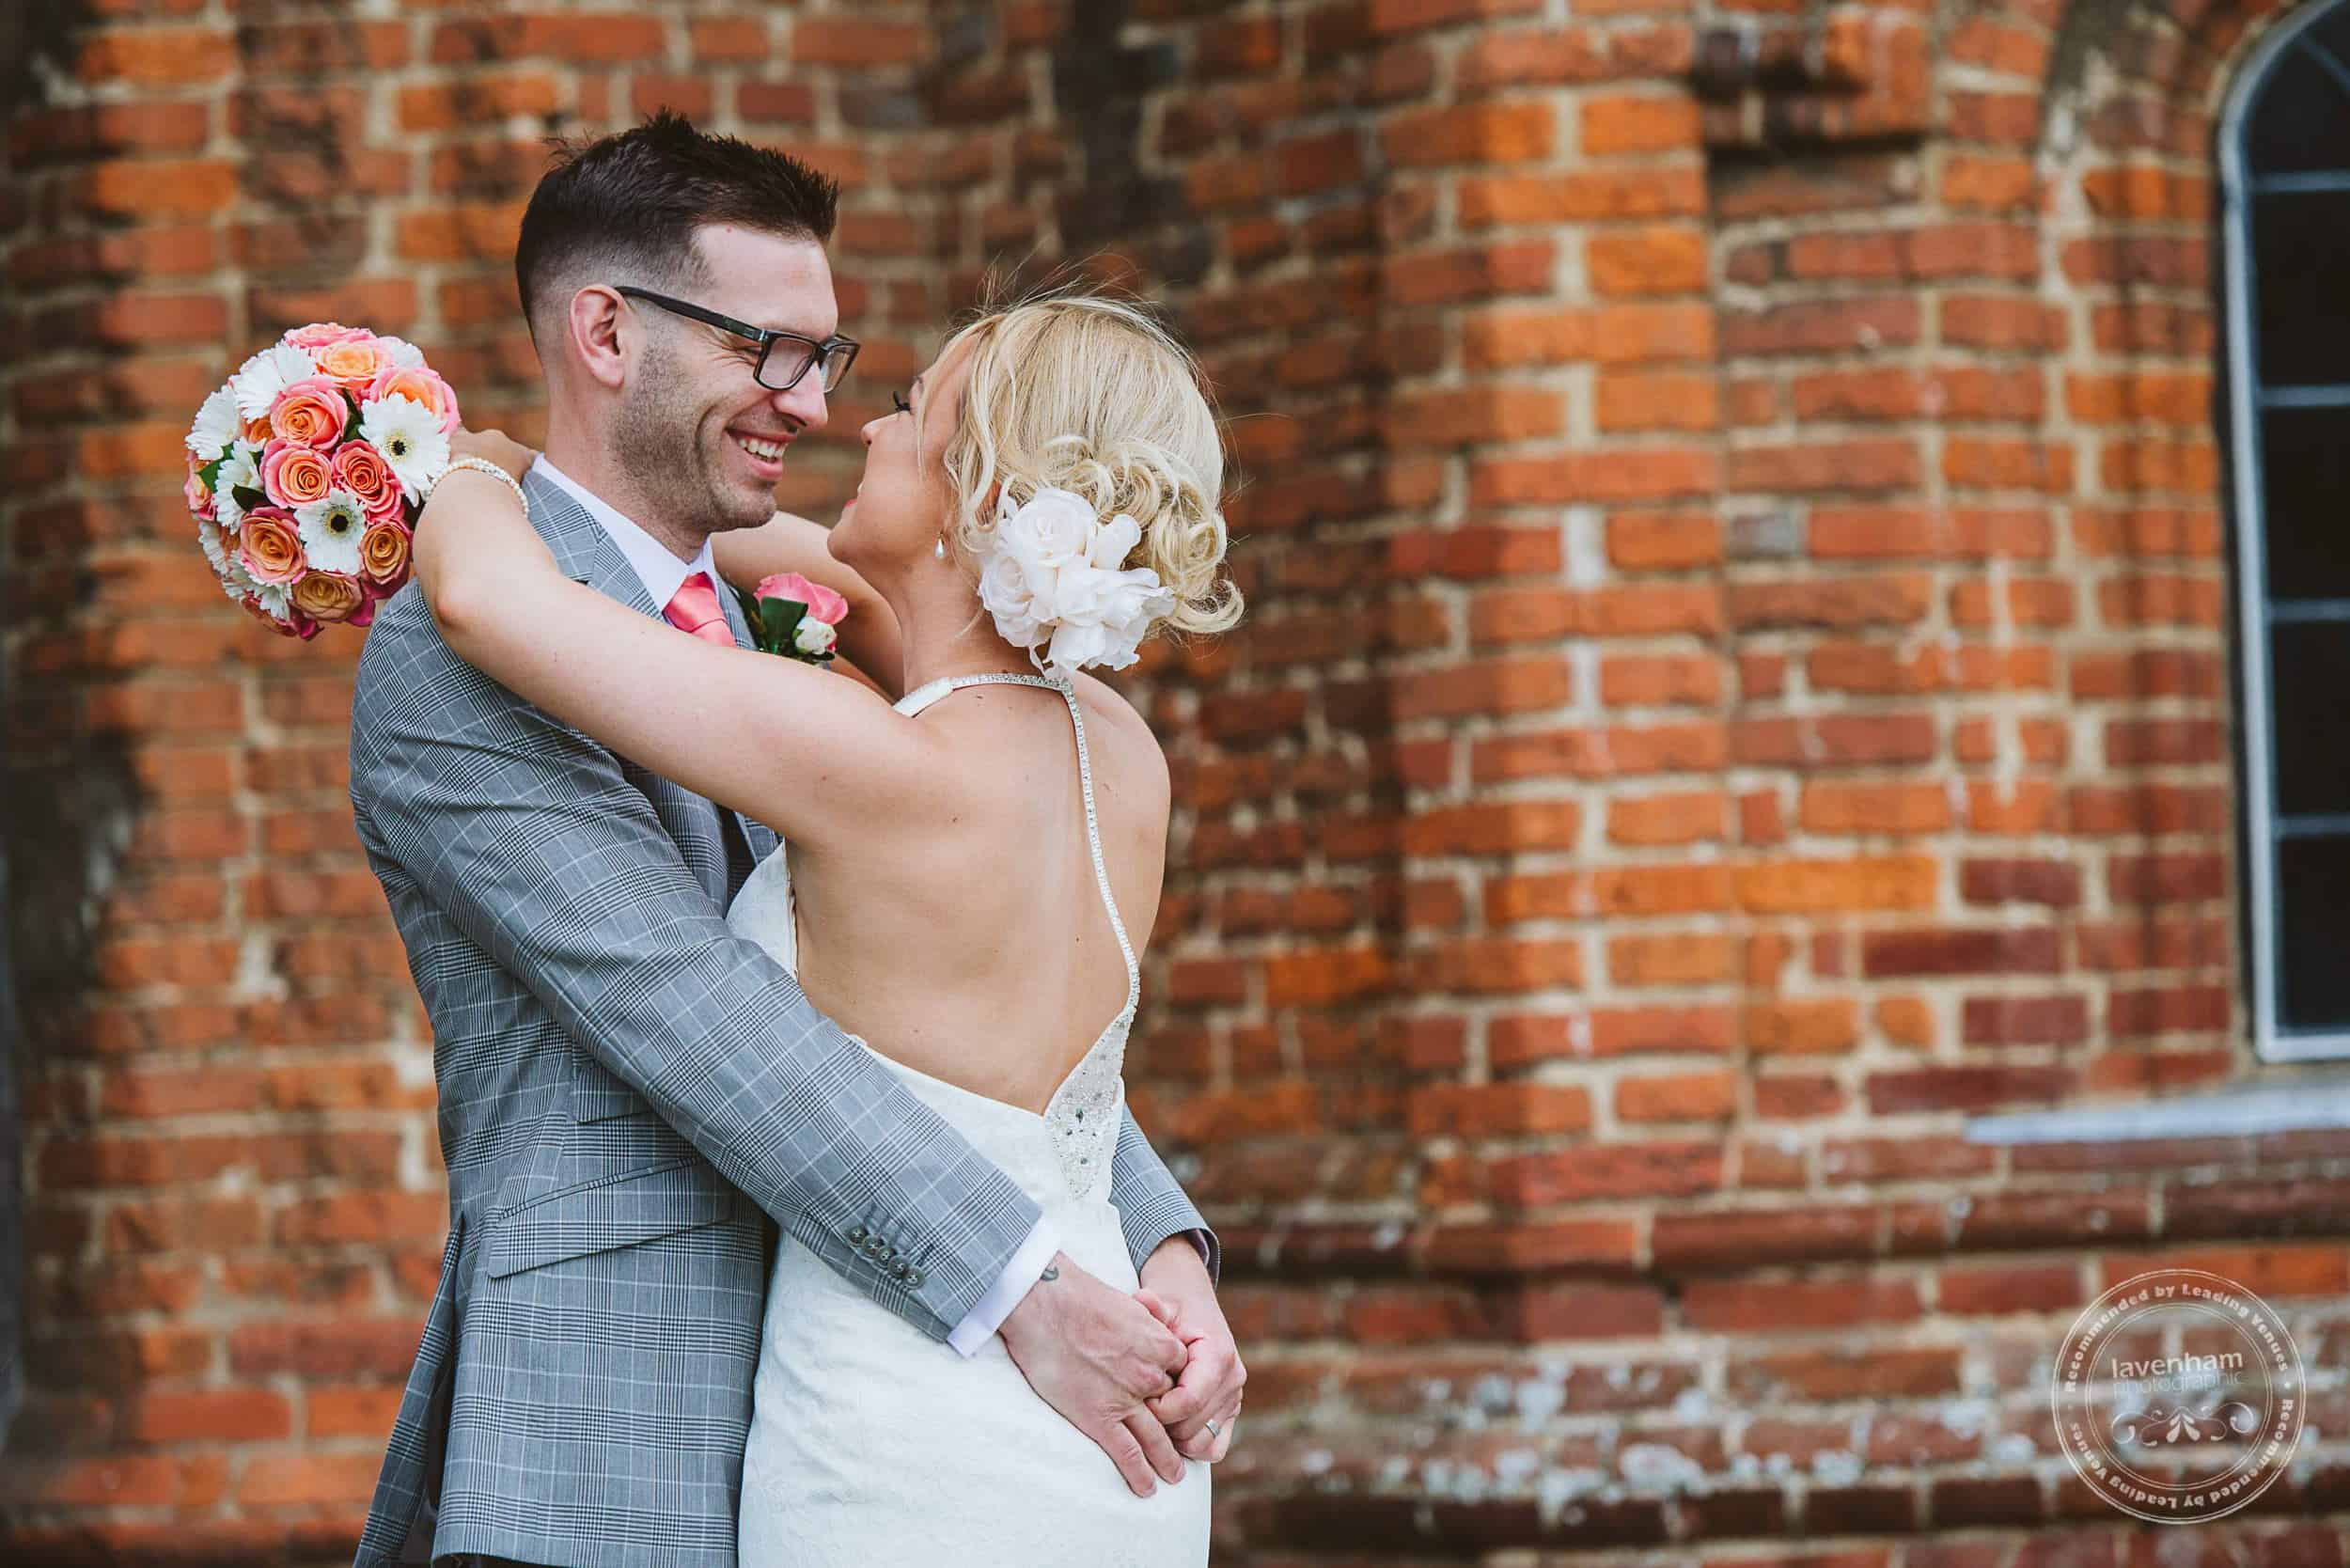 140717 Layer Marney Wedding Photography by Lavenham Photographic 091